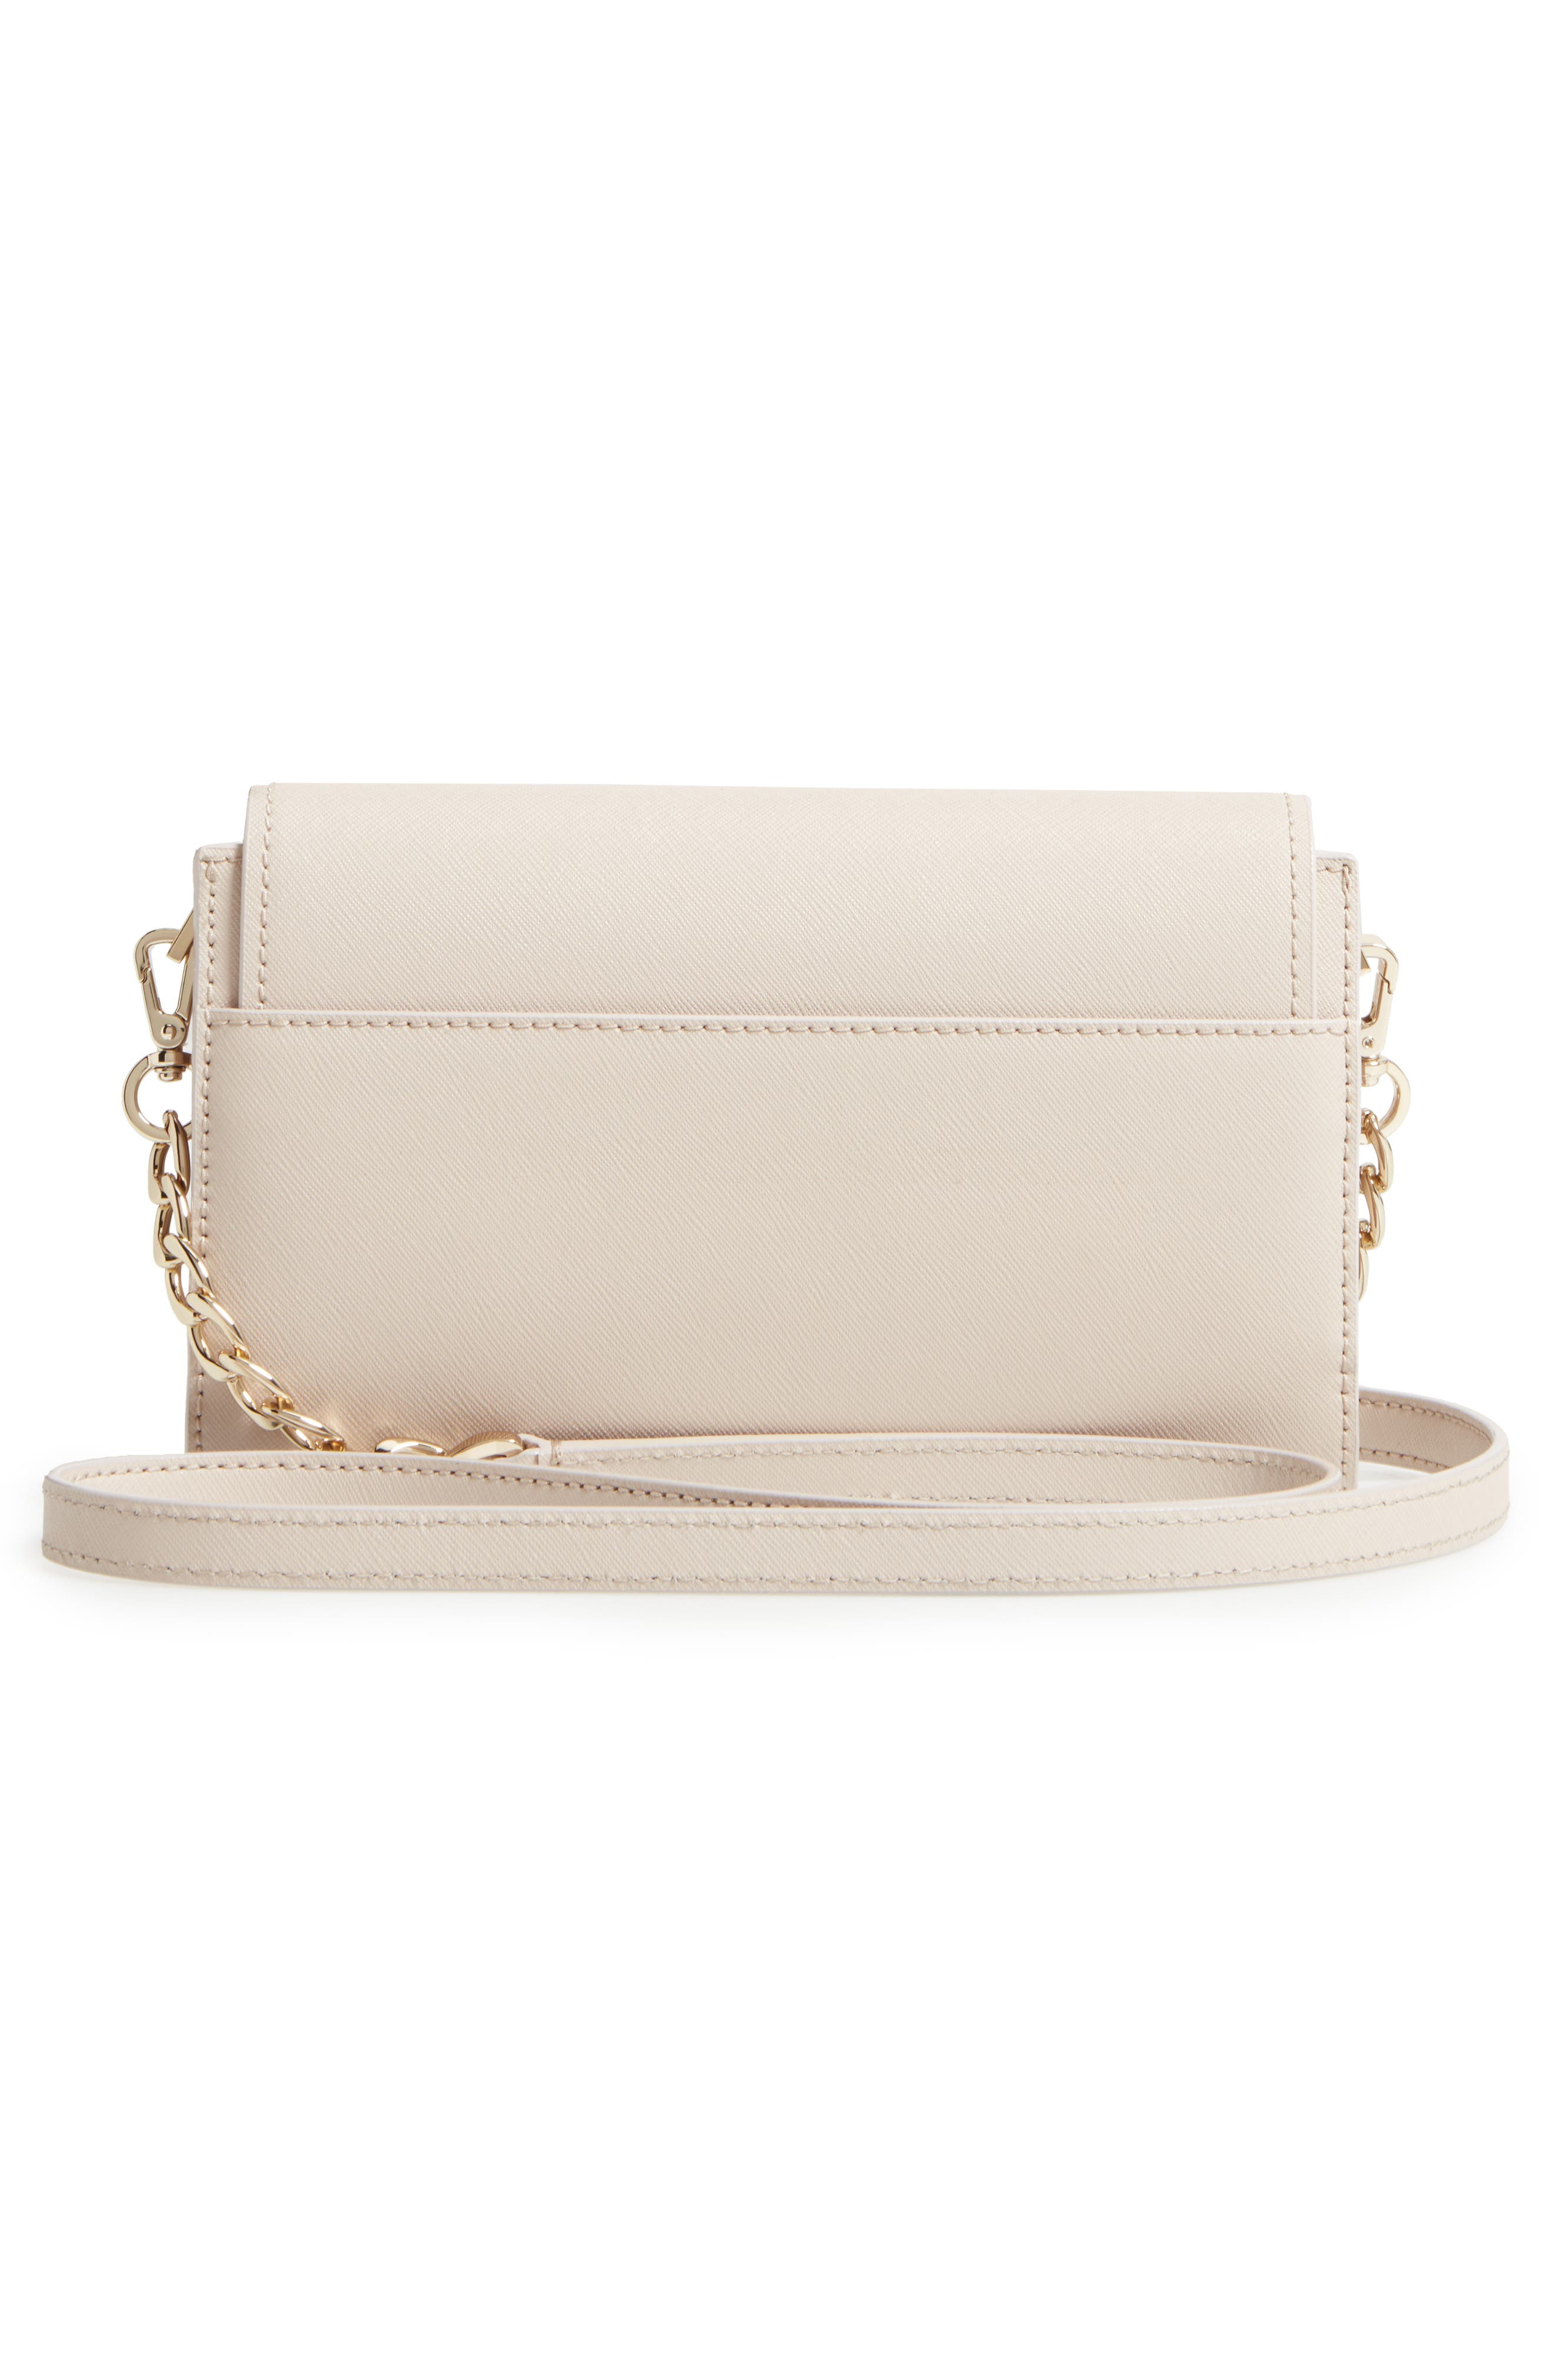 make it mine - camila leather clutch,                             Alternate thumbnail 6, color,